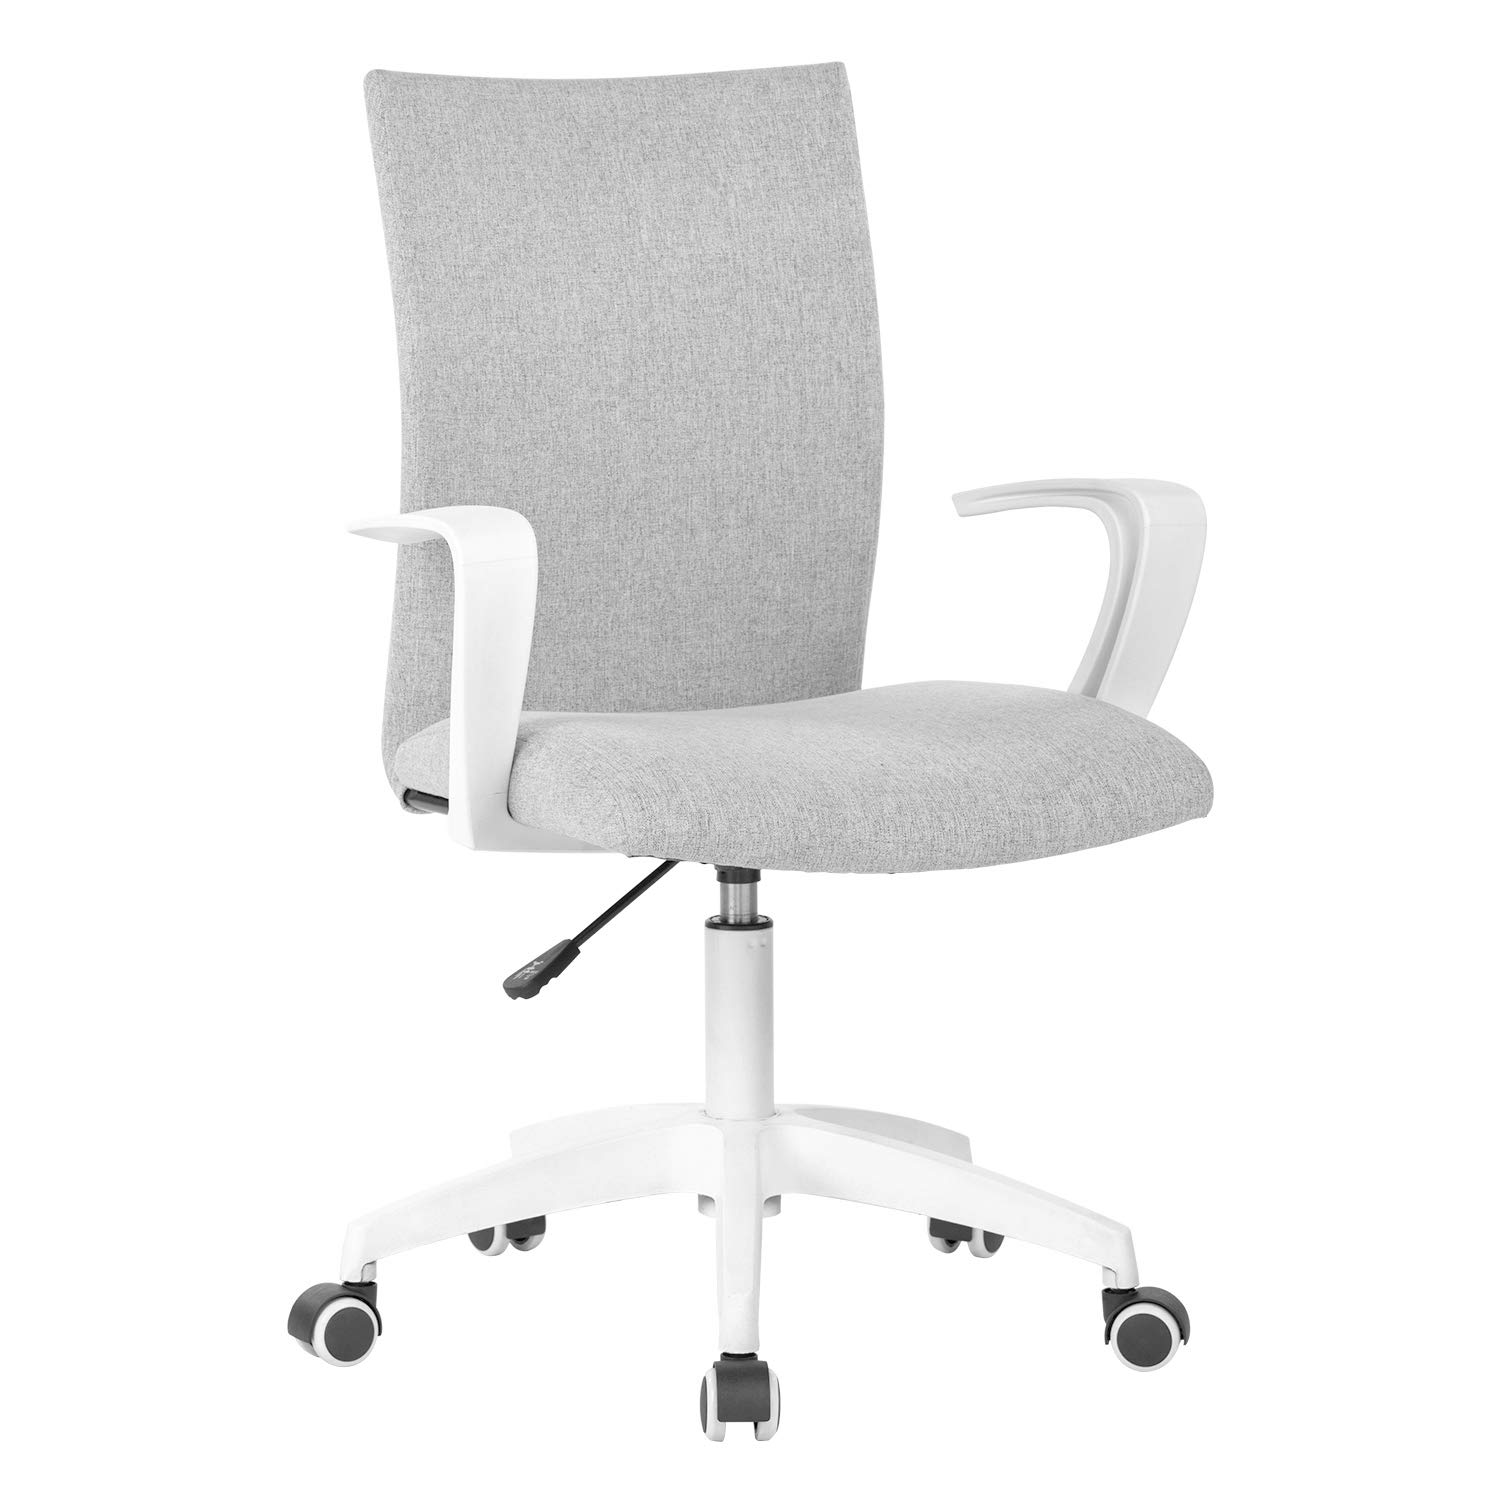 Office Desk Chair with Arms and Adjustable Height, Home Computer Task Chair for Work Space, Grey & White by LIANFENG